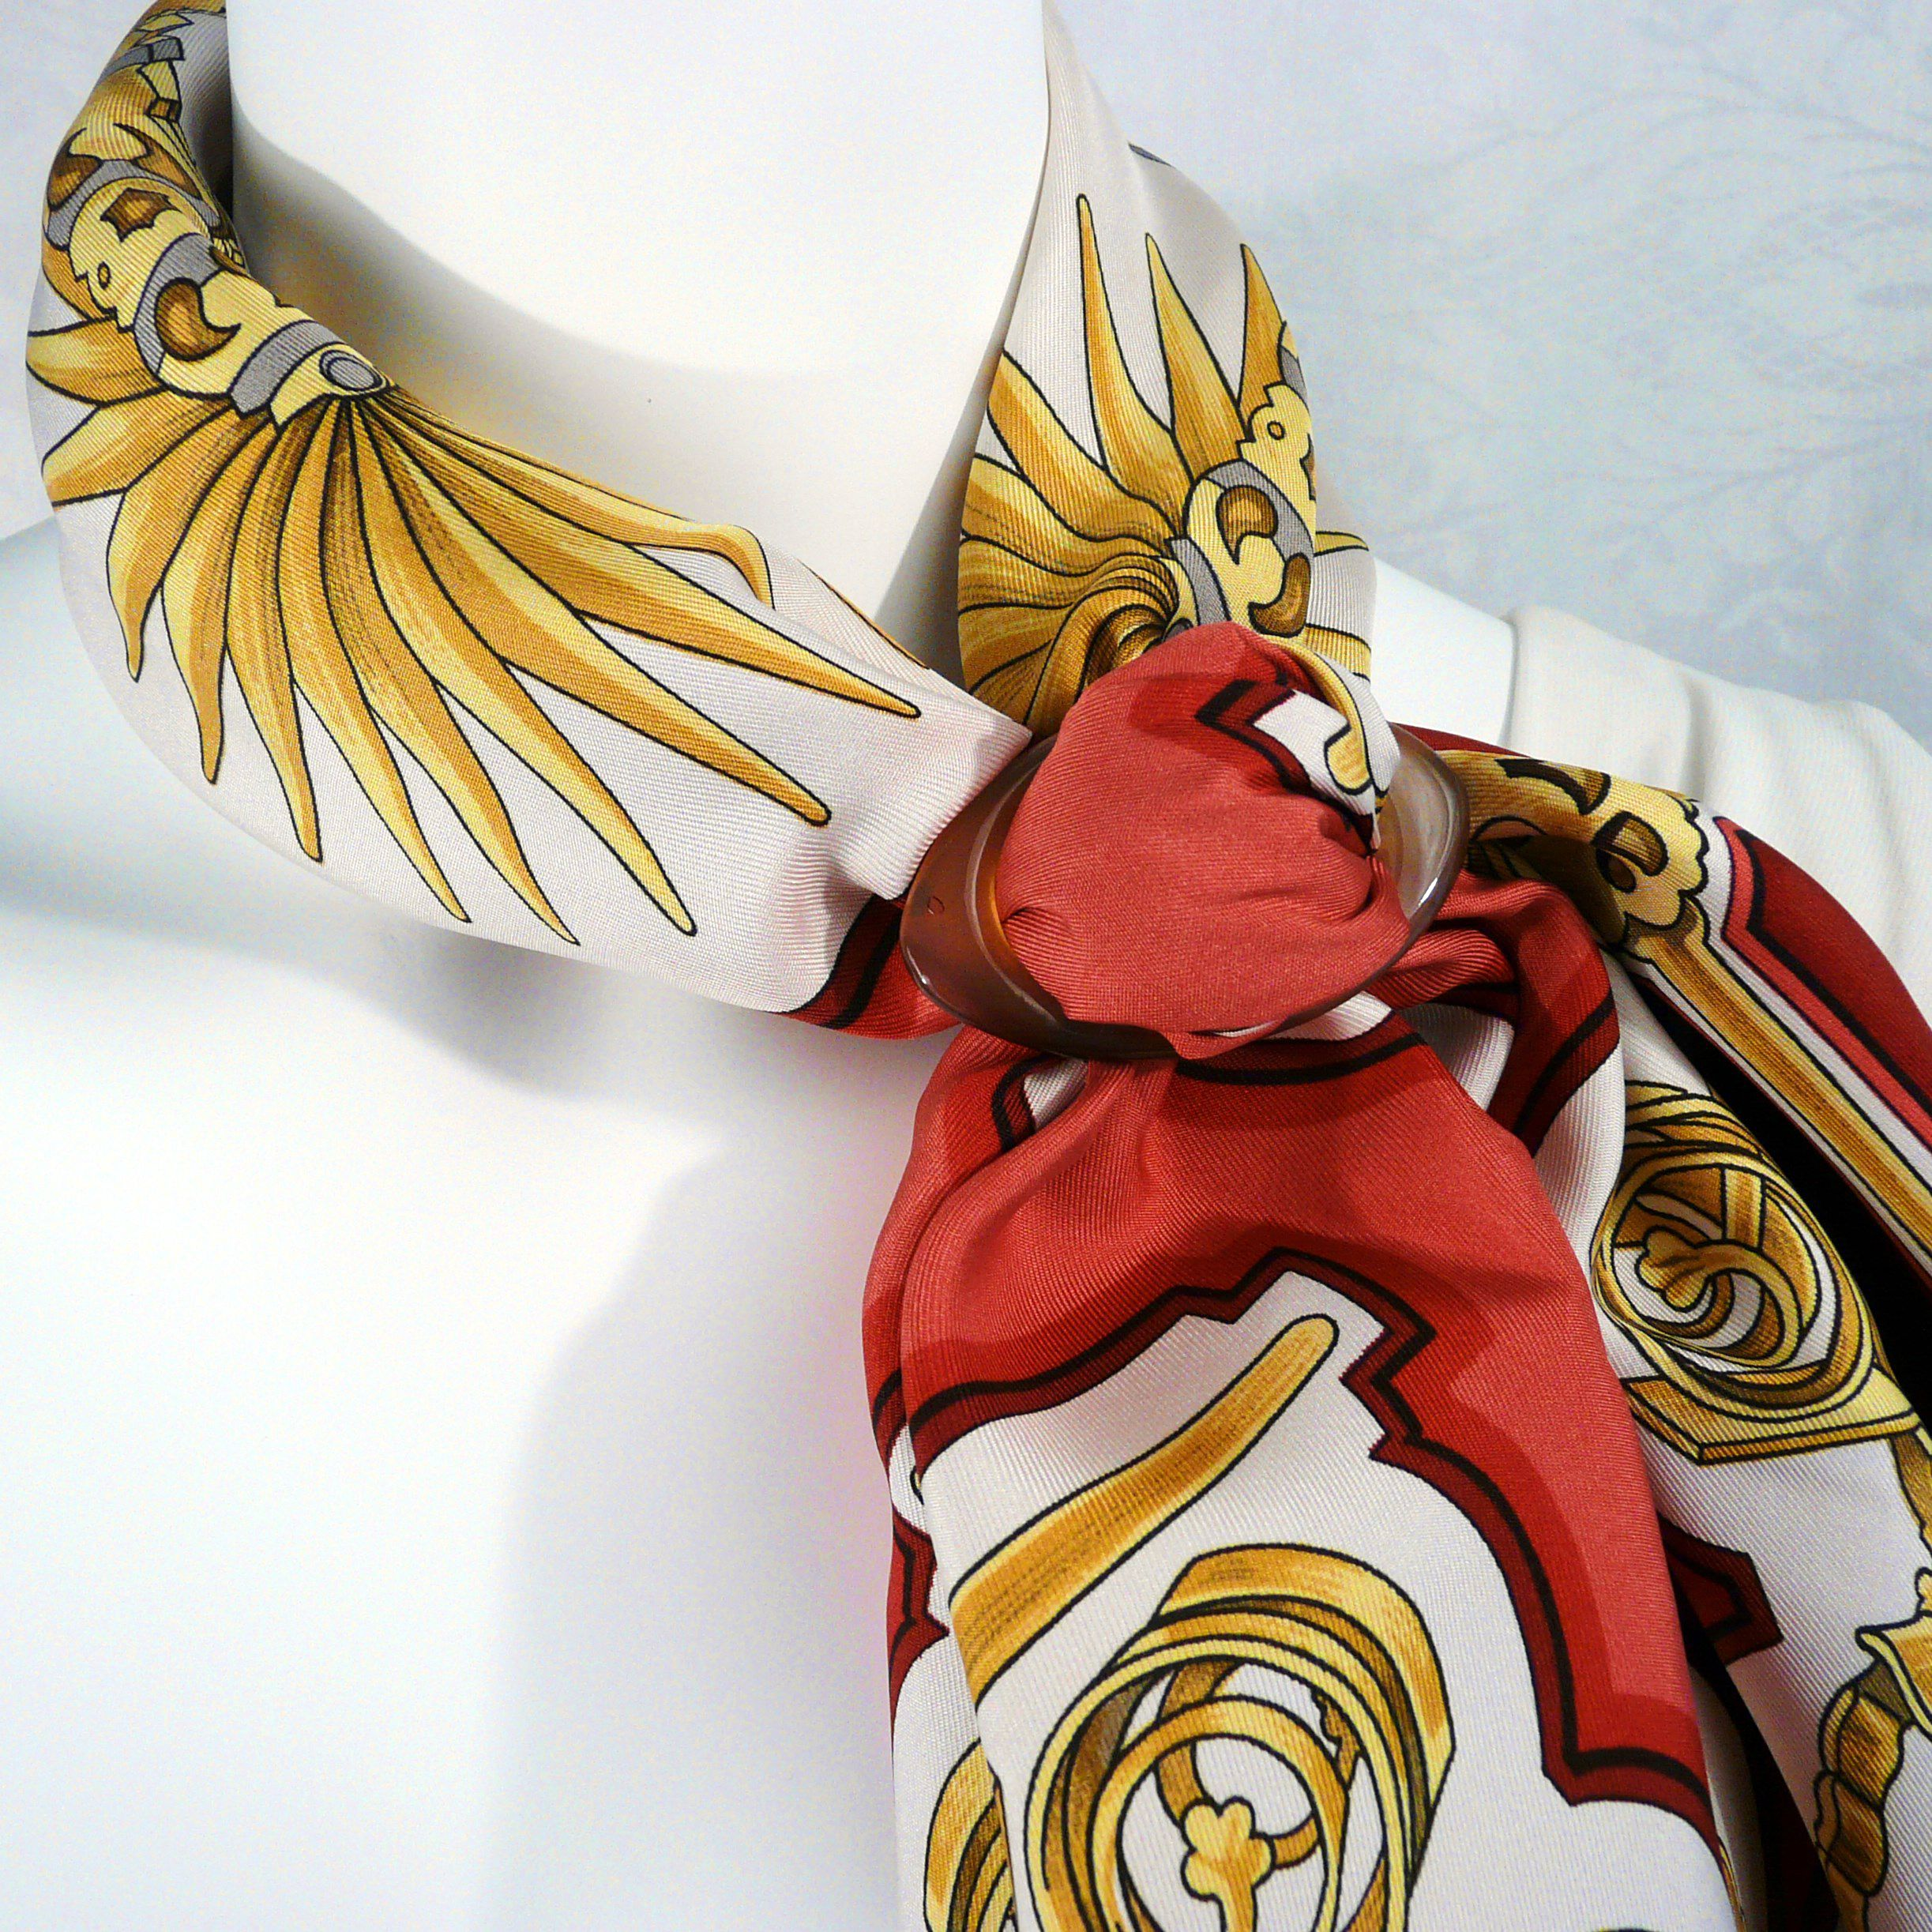 Eperon d'Or HERMES with Anneau Sur II Horn Scarf Ring Carre de Paris